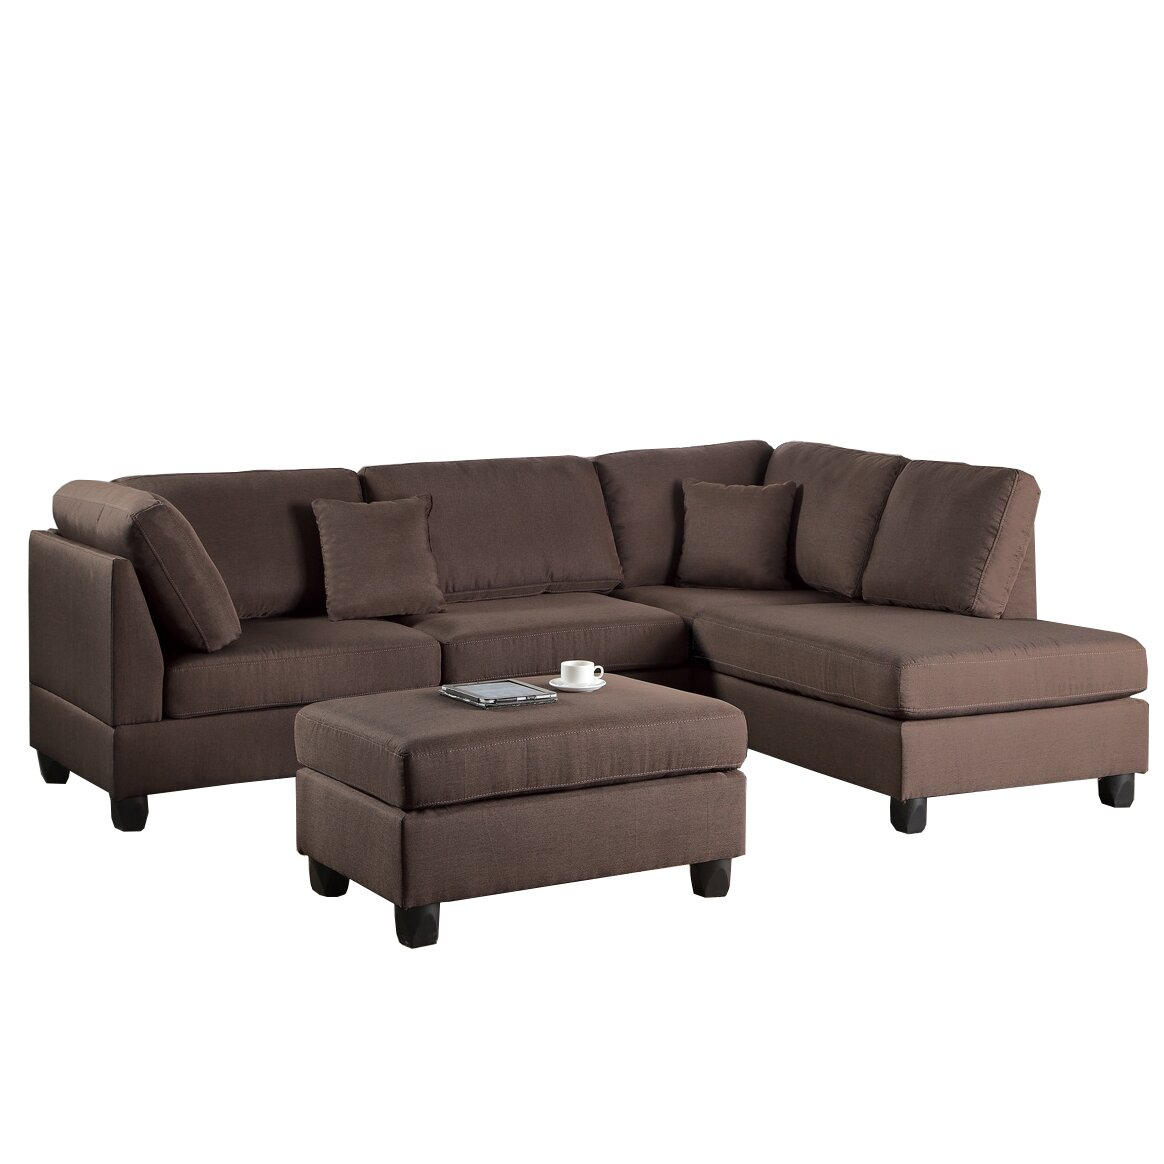 Poundex Bobkona Dervon Reversible Chaise Sectional ...